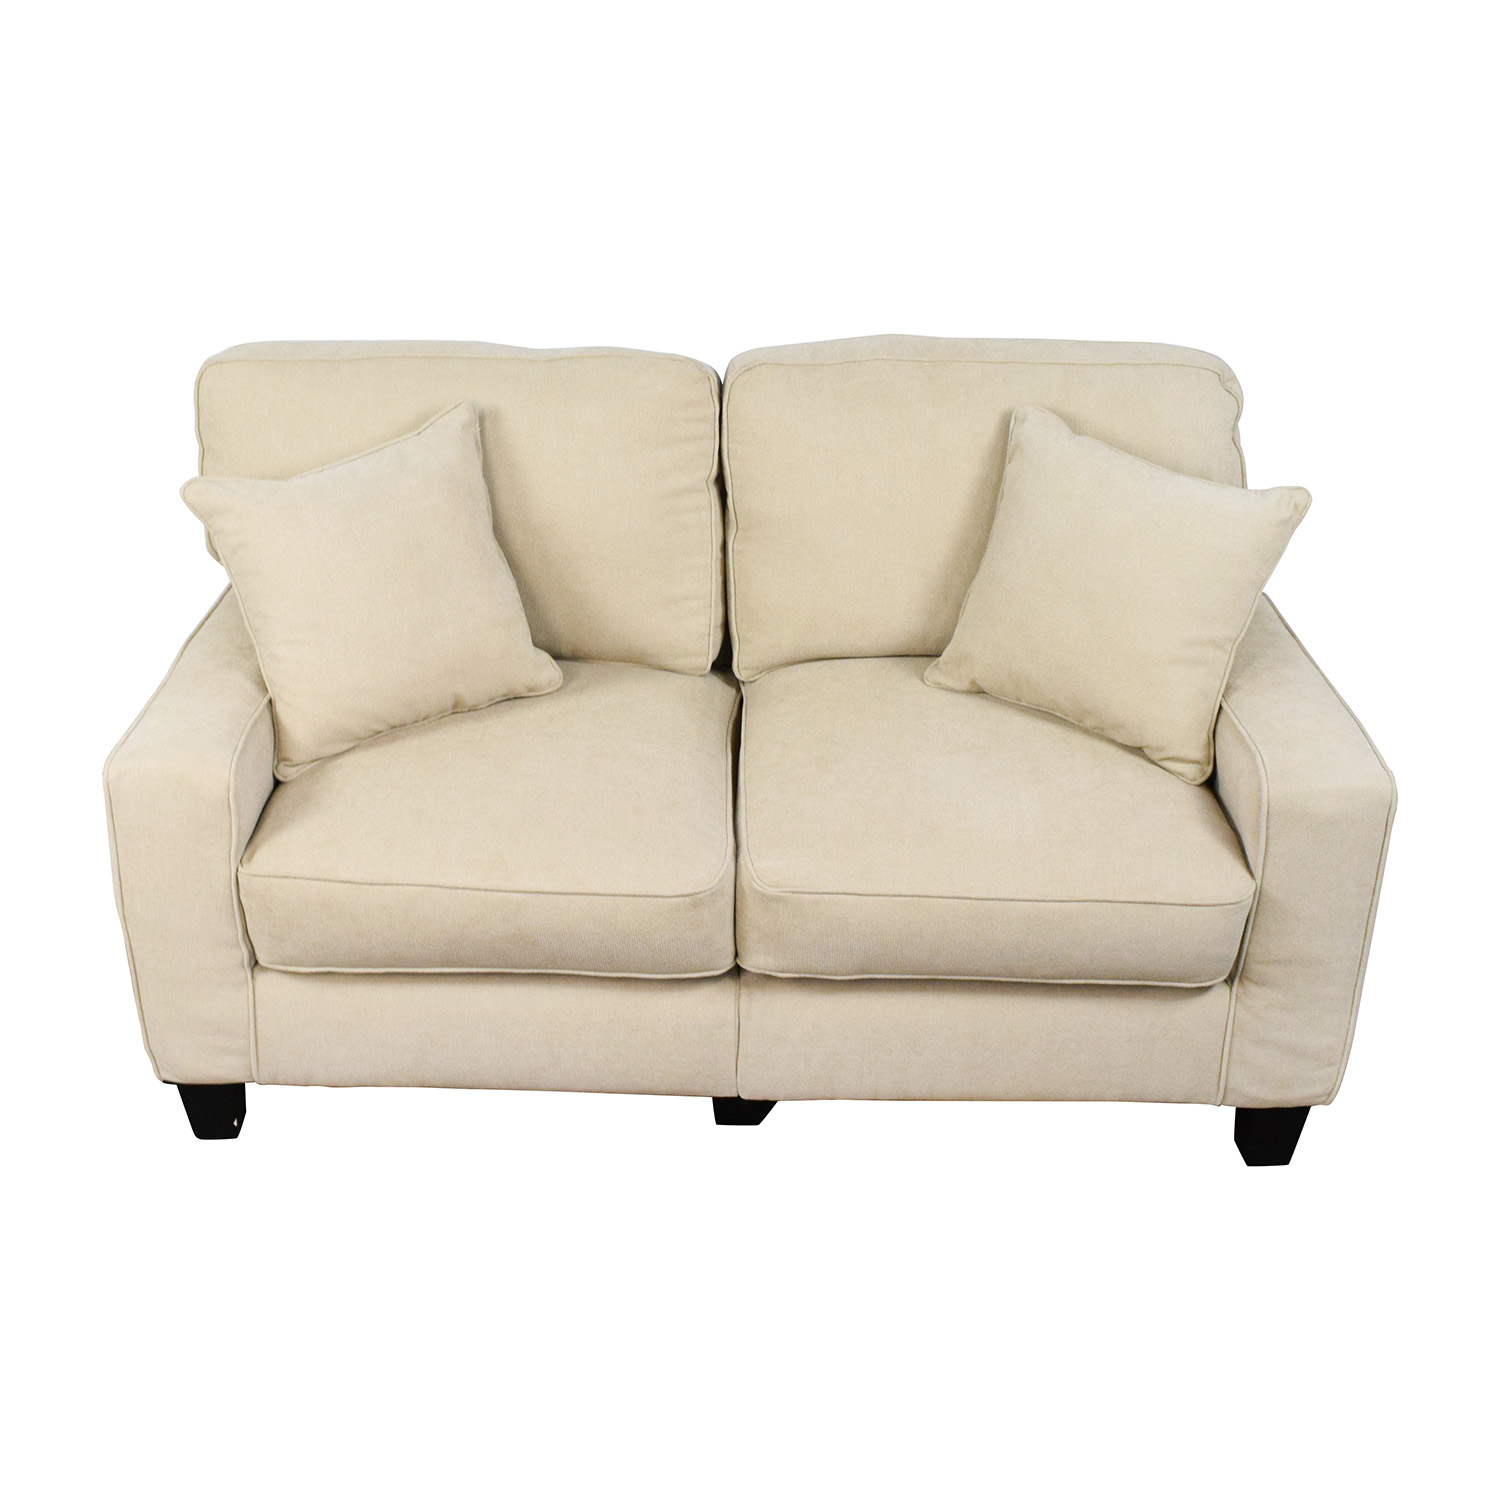 bob manual room furniture living recliners and p navigator large tan discount s reclining loveseat gallery